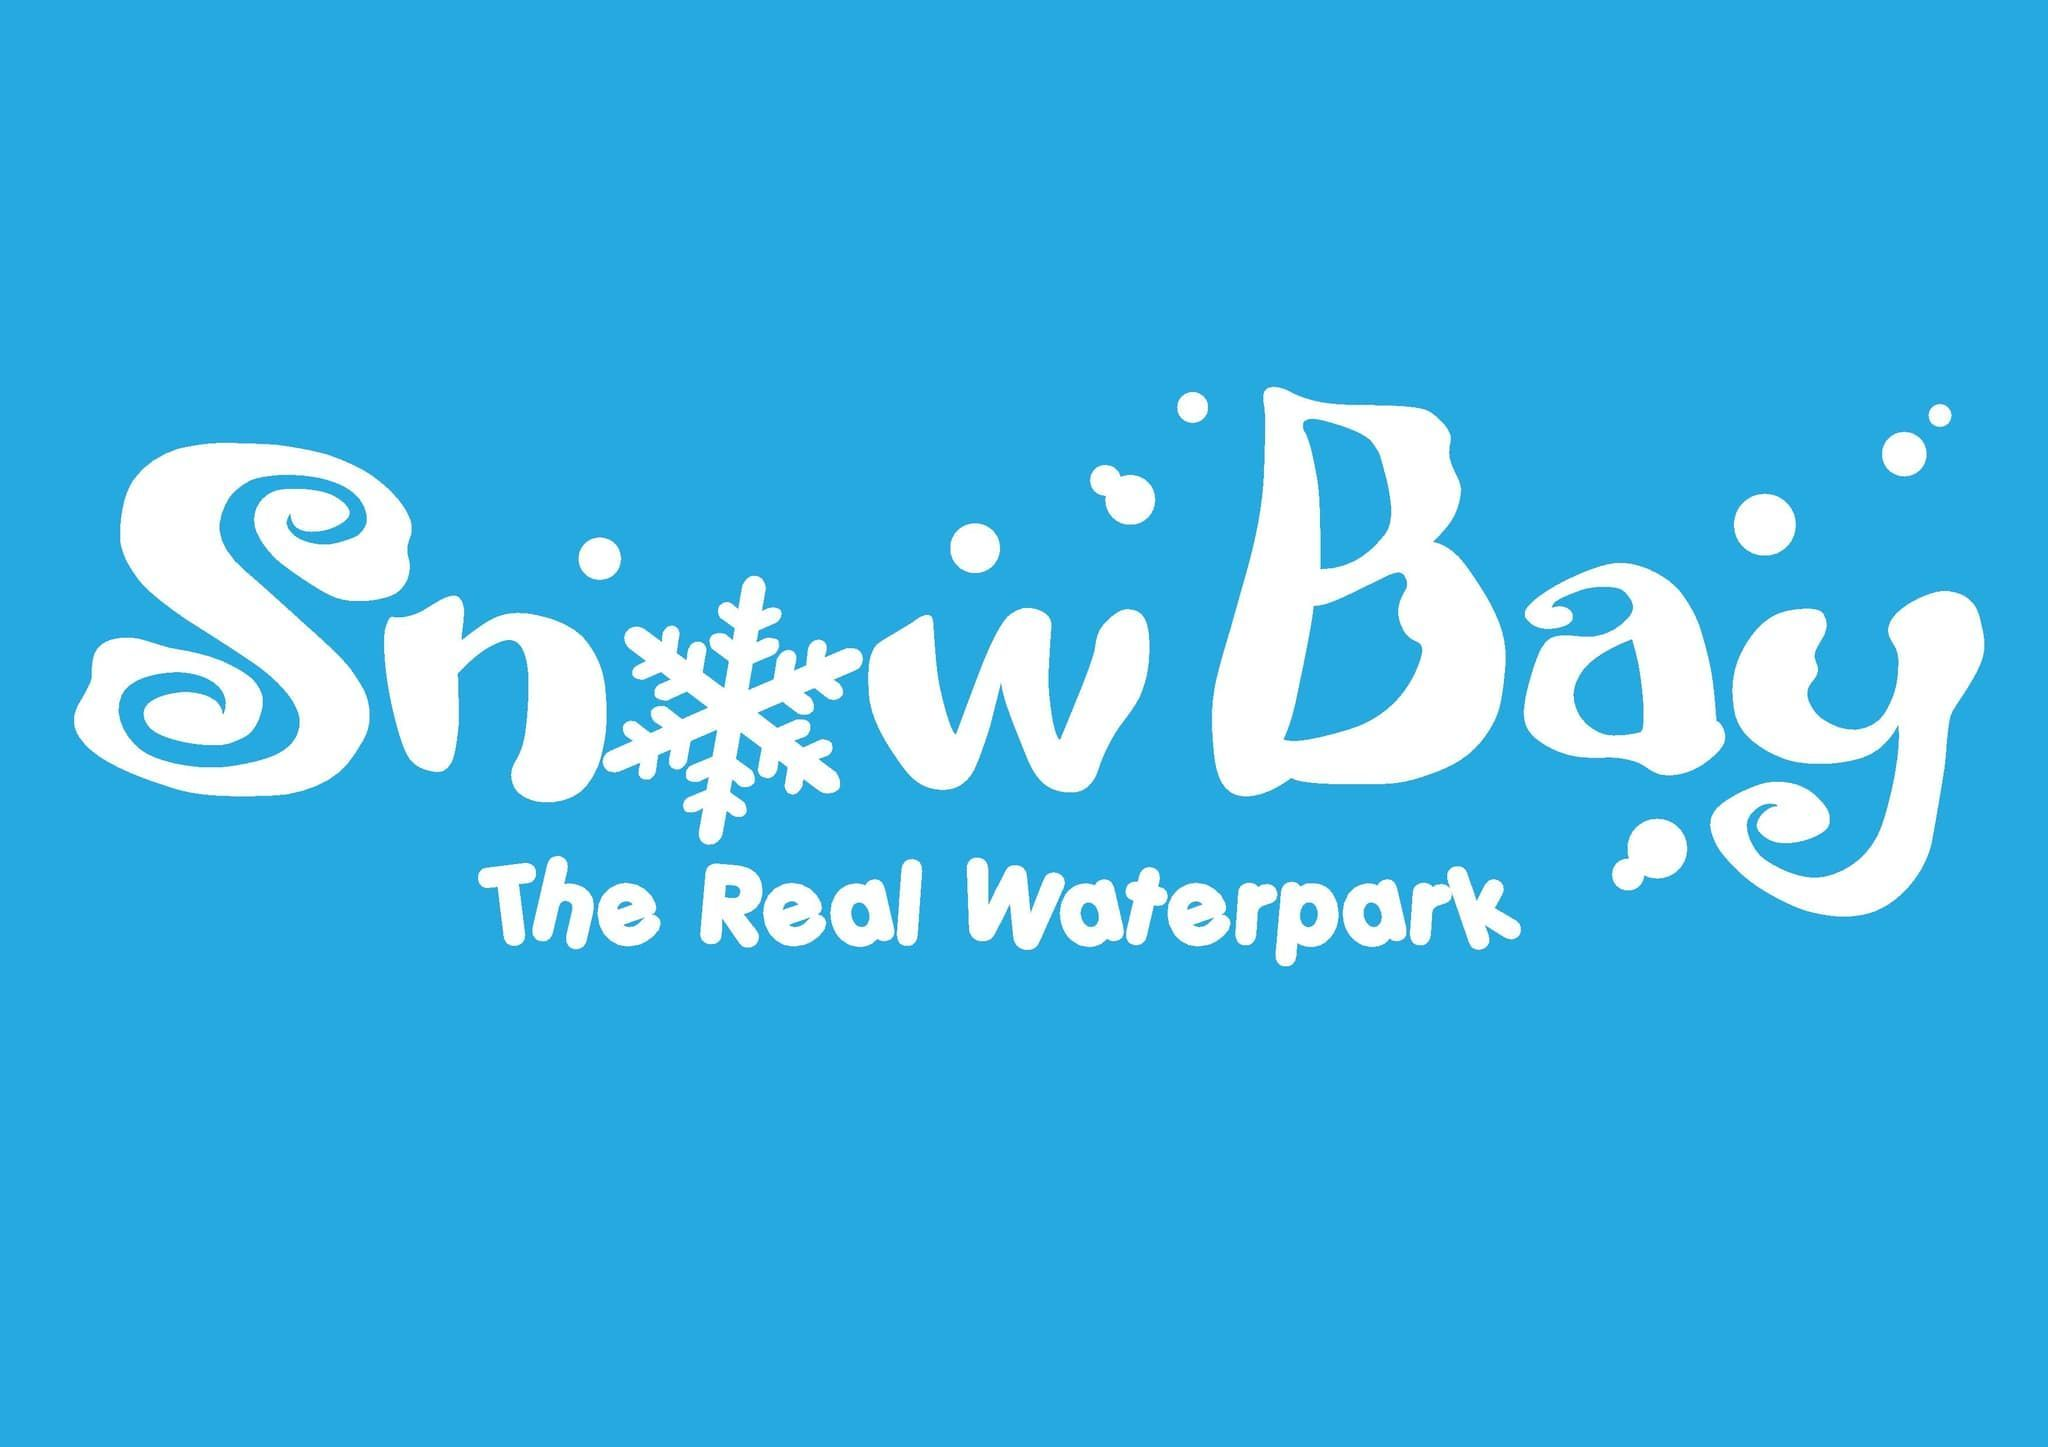 Snowbay Waterpark - Background